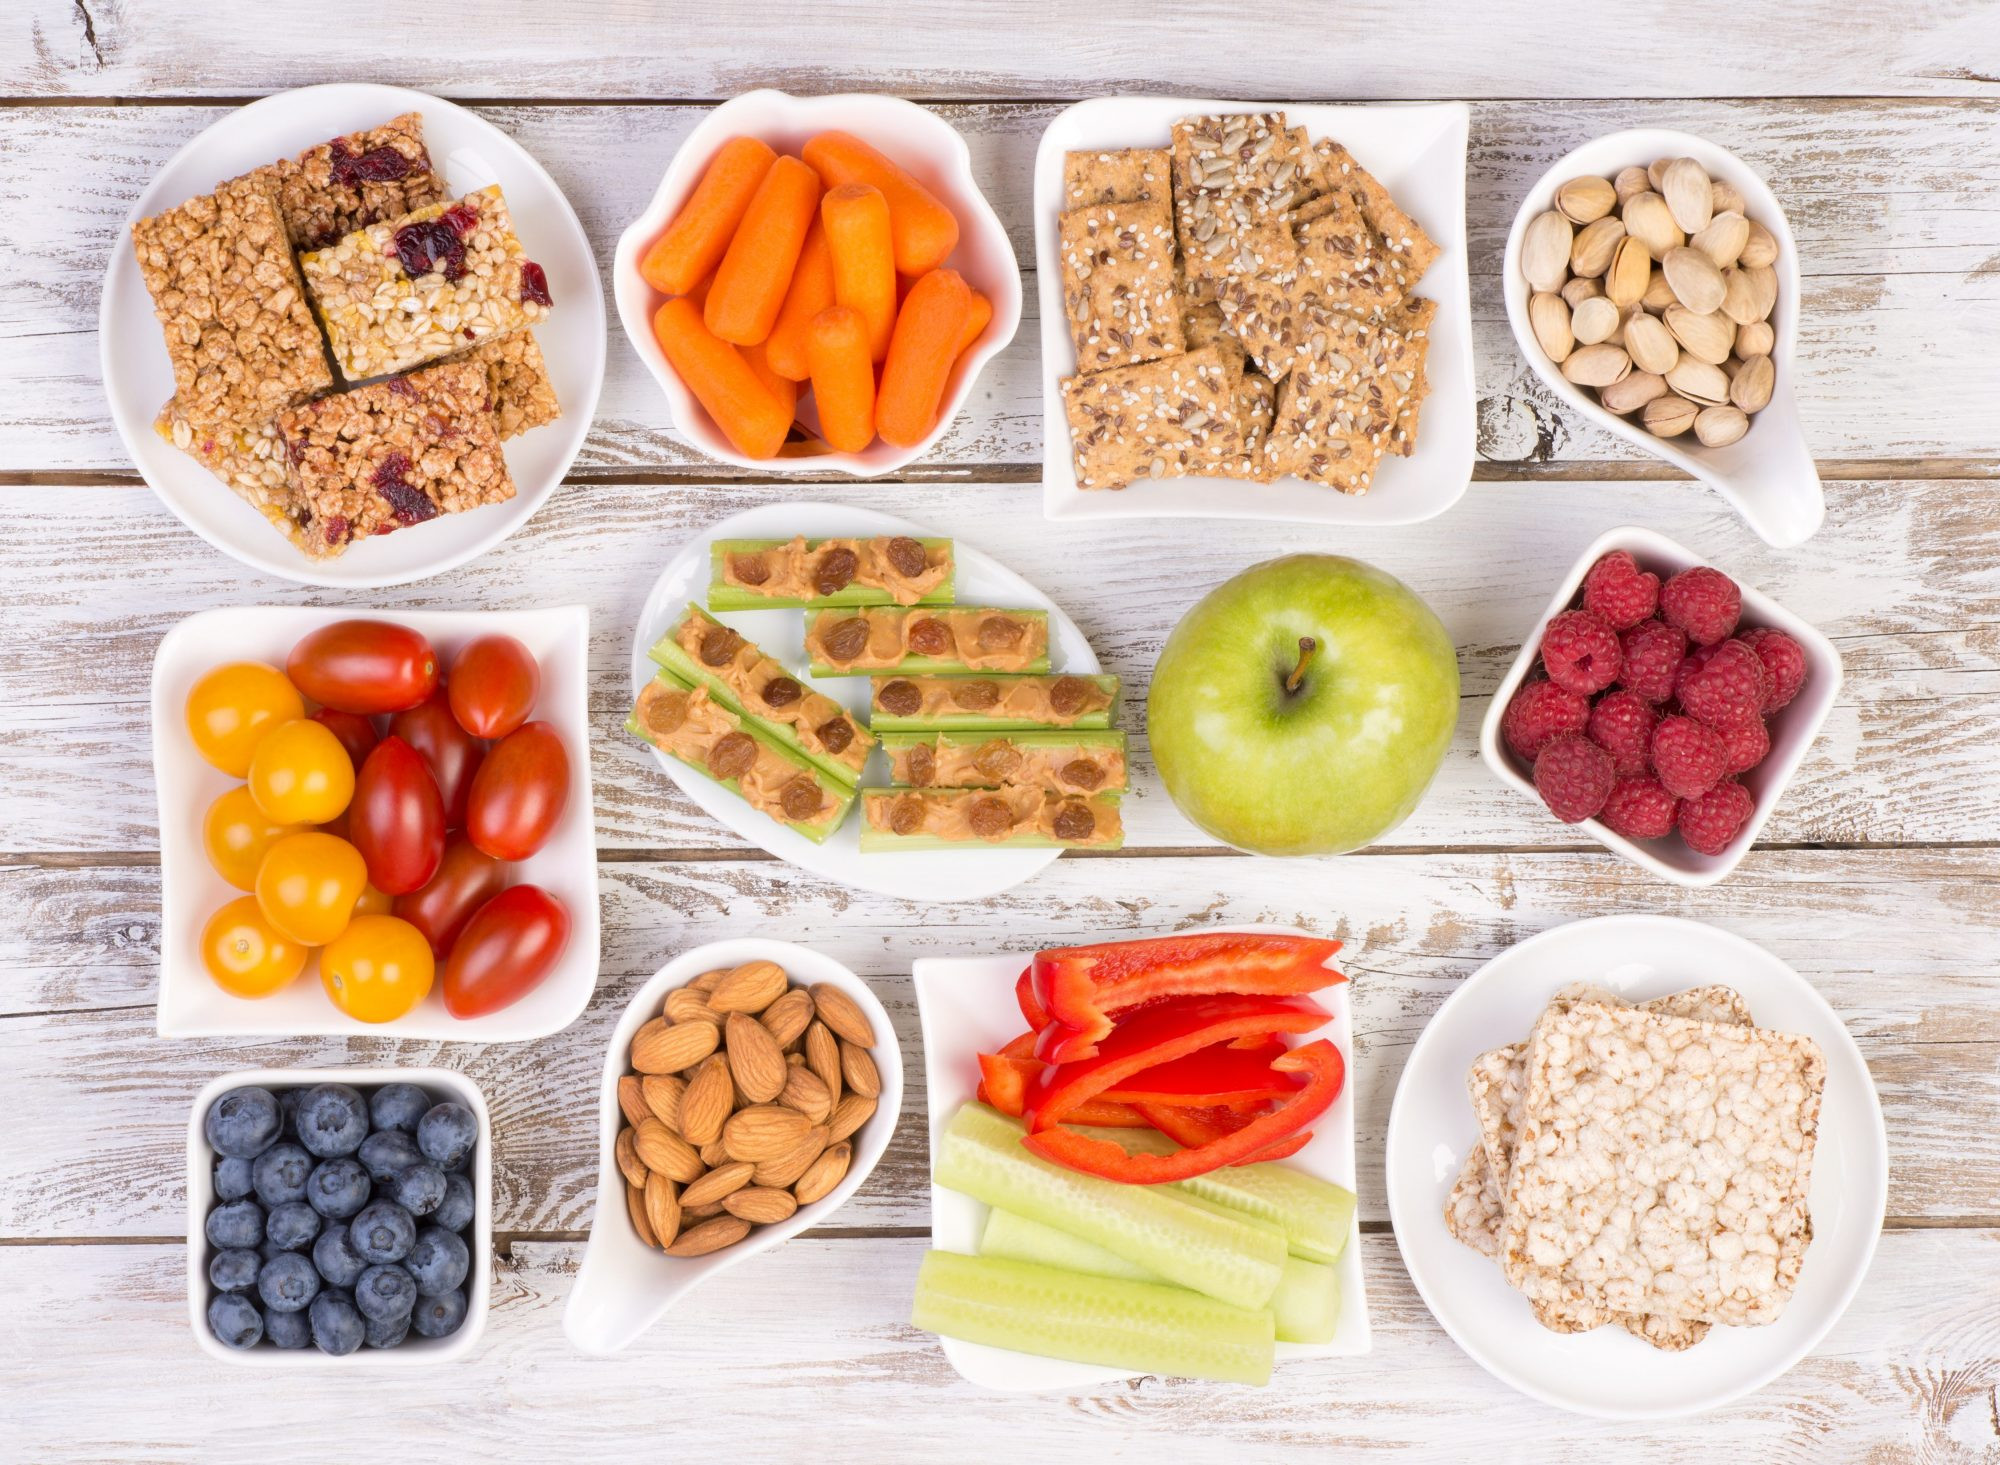 Healthy Snacks For Children  10 Tips to Healthy and Simple Snacks for Kids and Adults